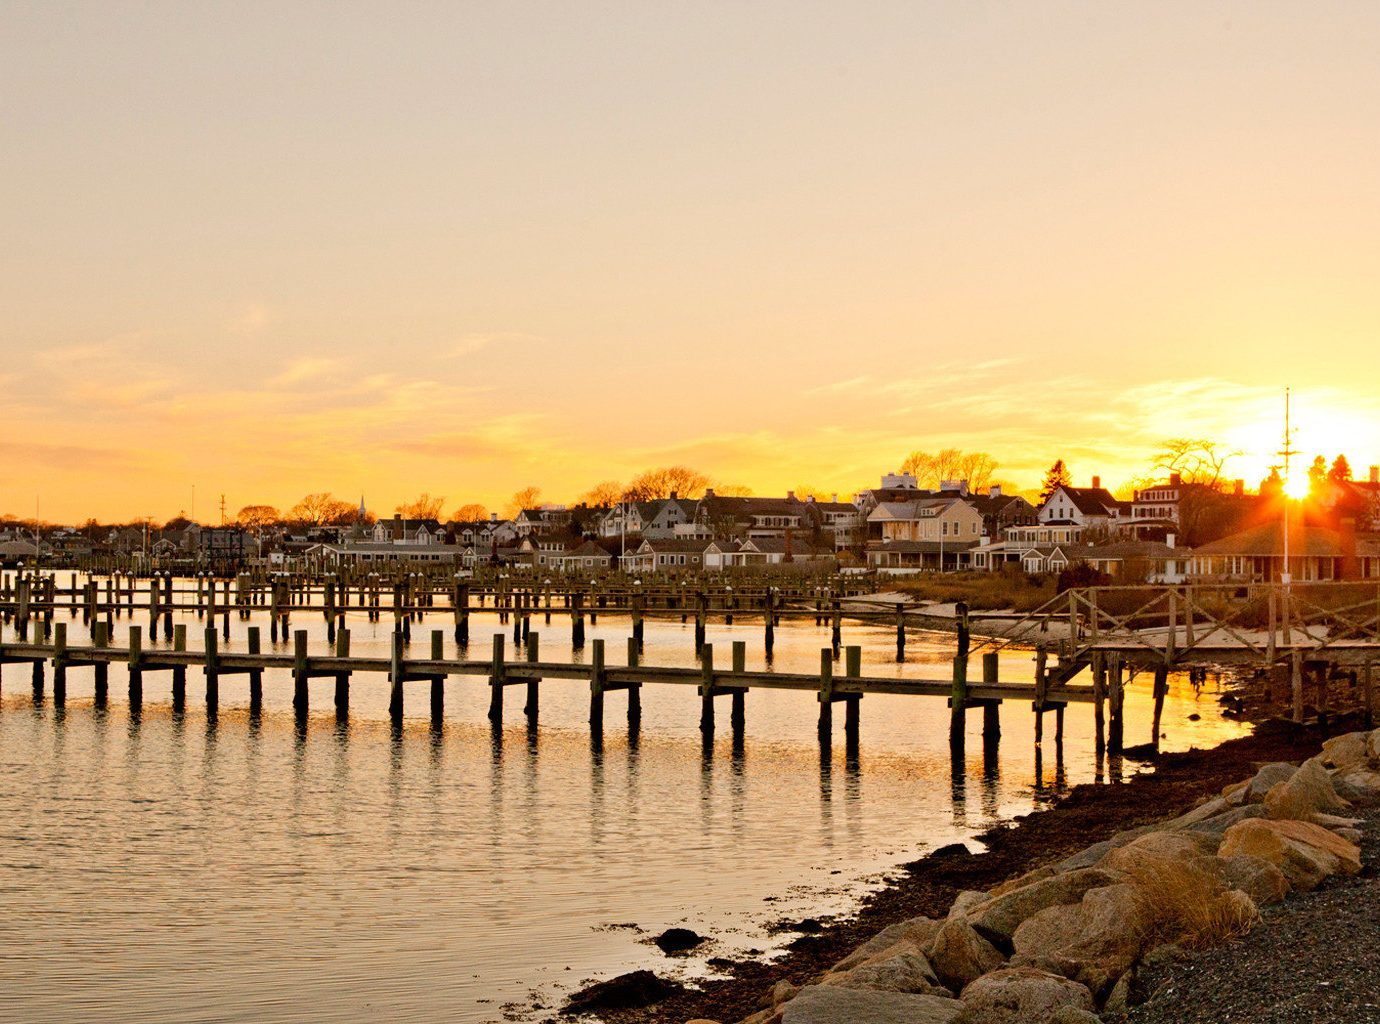 B&B Boutique Outdoors Scenic views Trip Ideas Waterfront water scene sky outdoor pier Sunset reflection sunrise dawn Sea evening dusk morning River shore Coast bridge walkway cityscape sunlight long lined line several